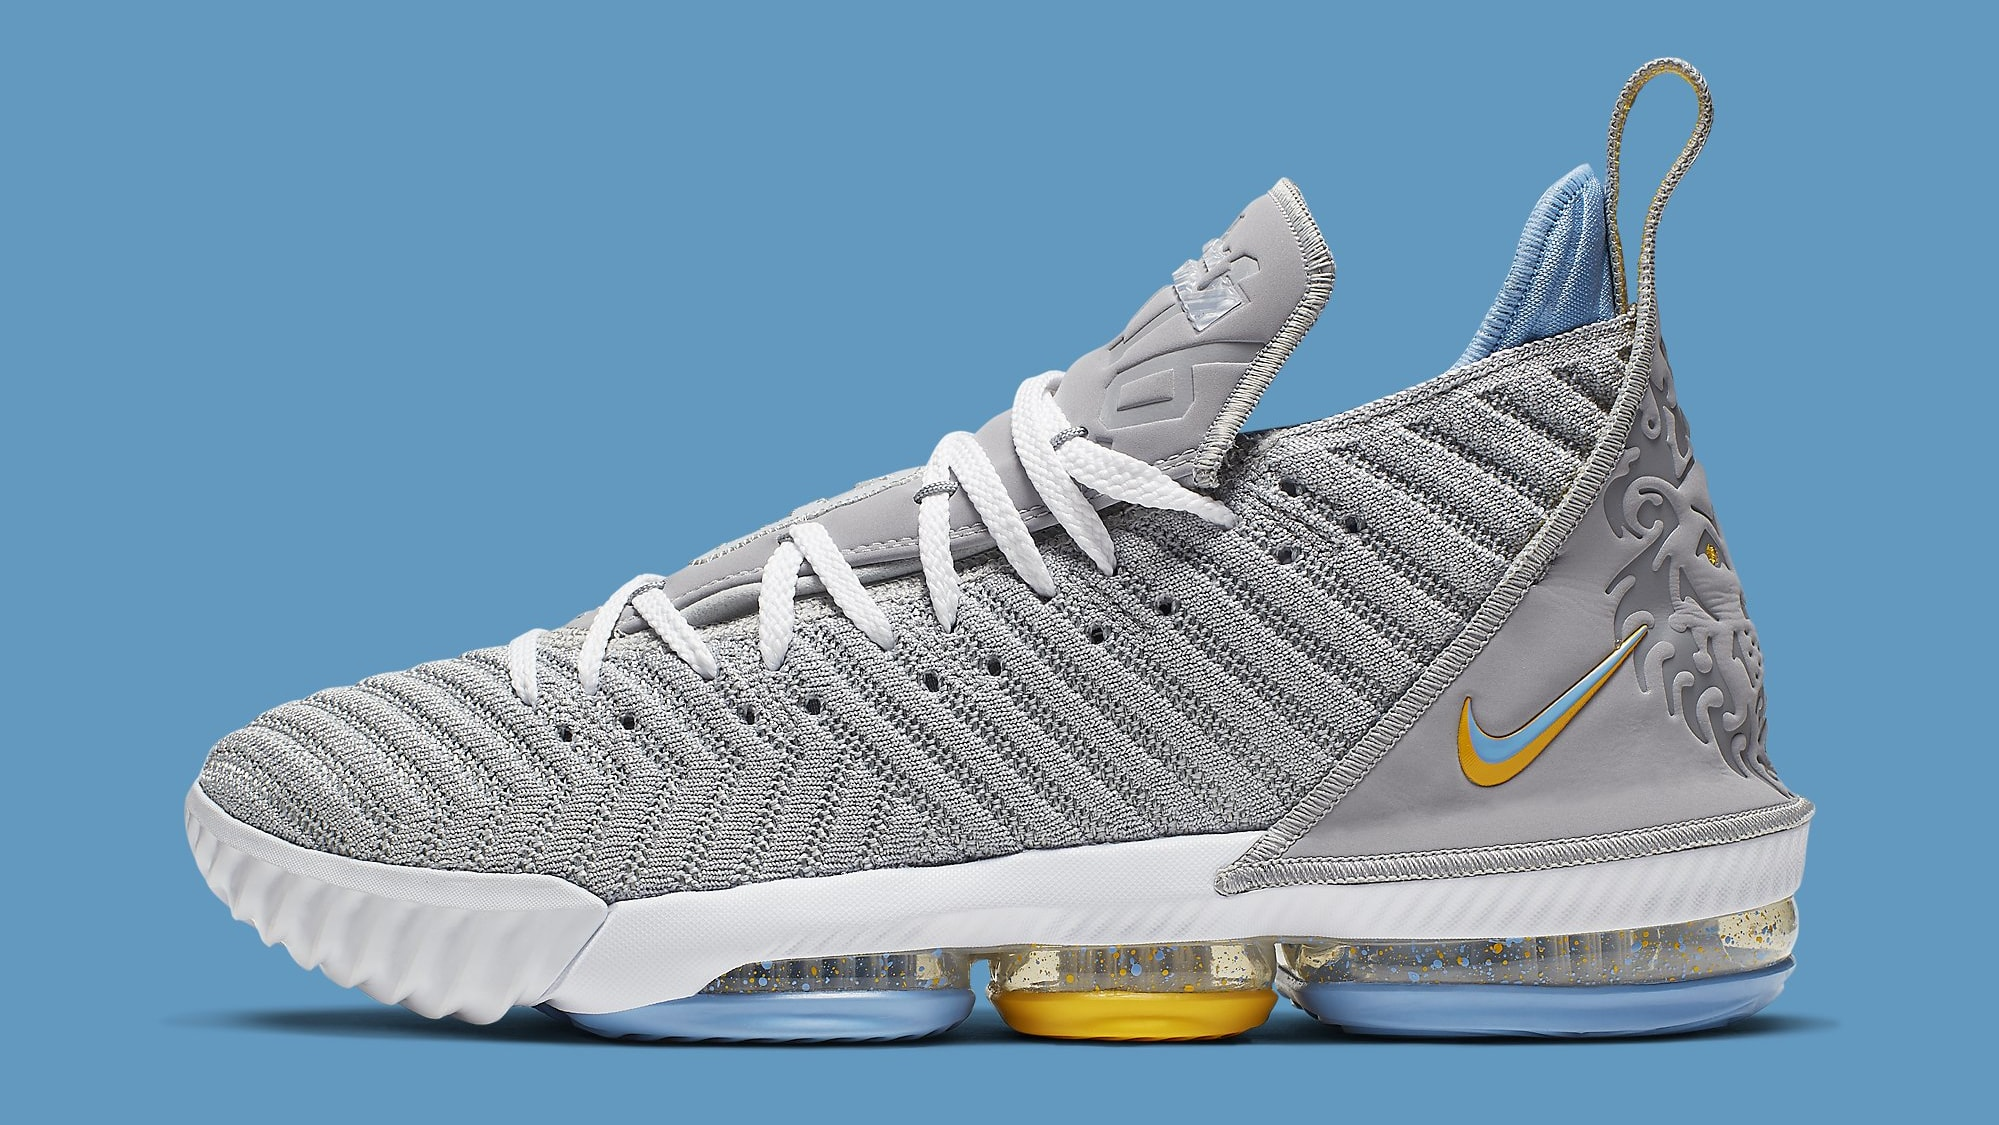 official photos f1327 947b0 Nike LeBron 16 MPLS Release Date CK4765-001 Pair | Sole ...